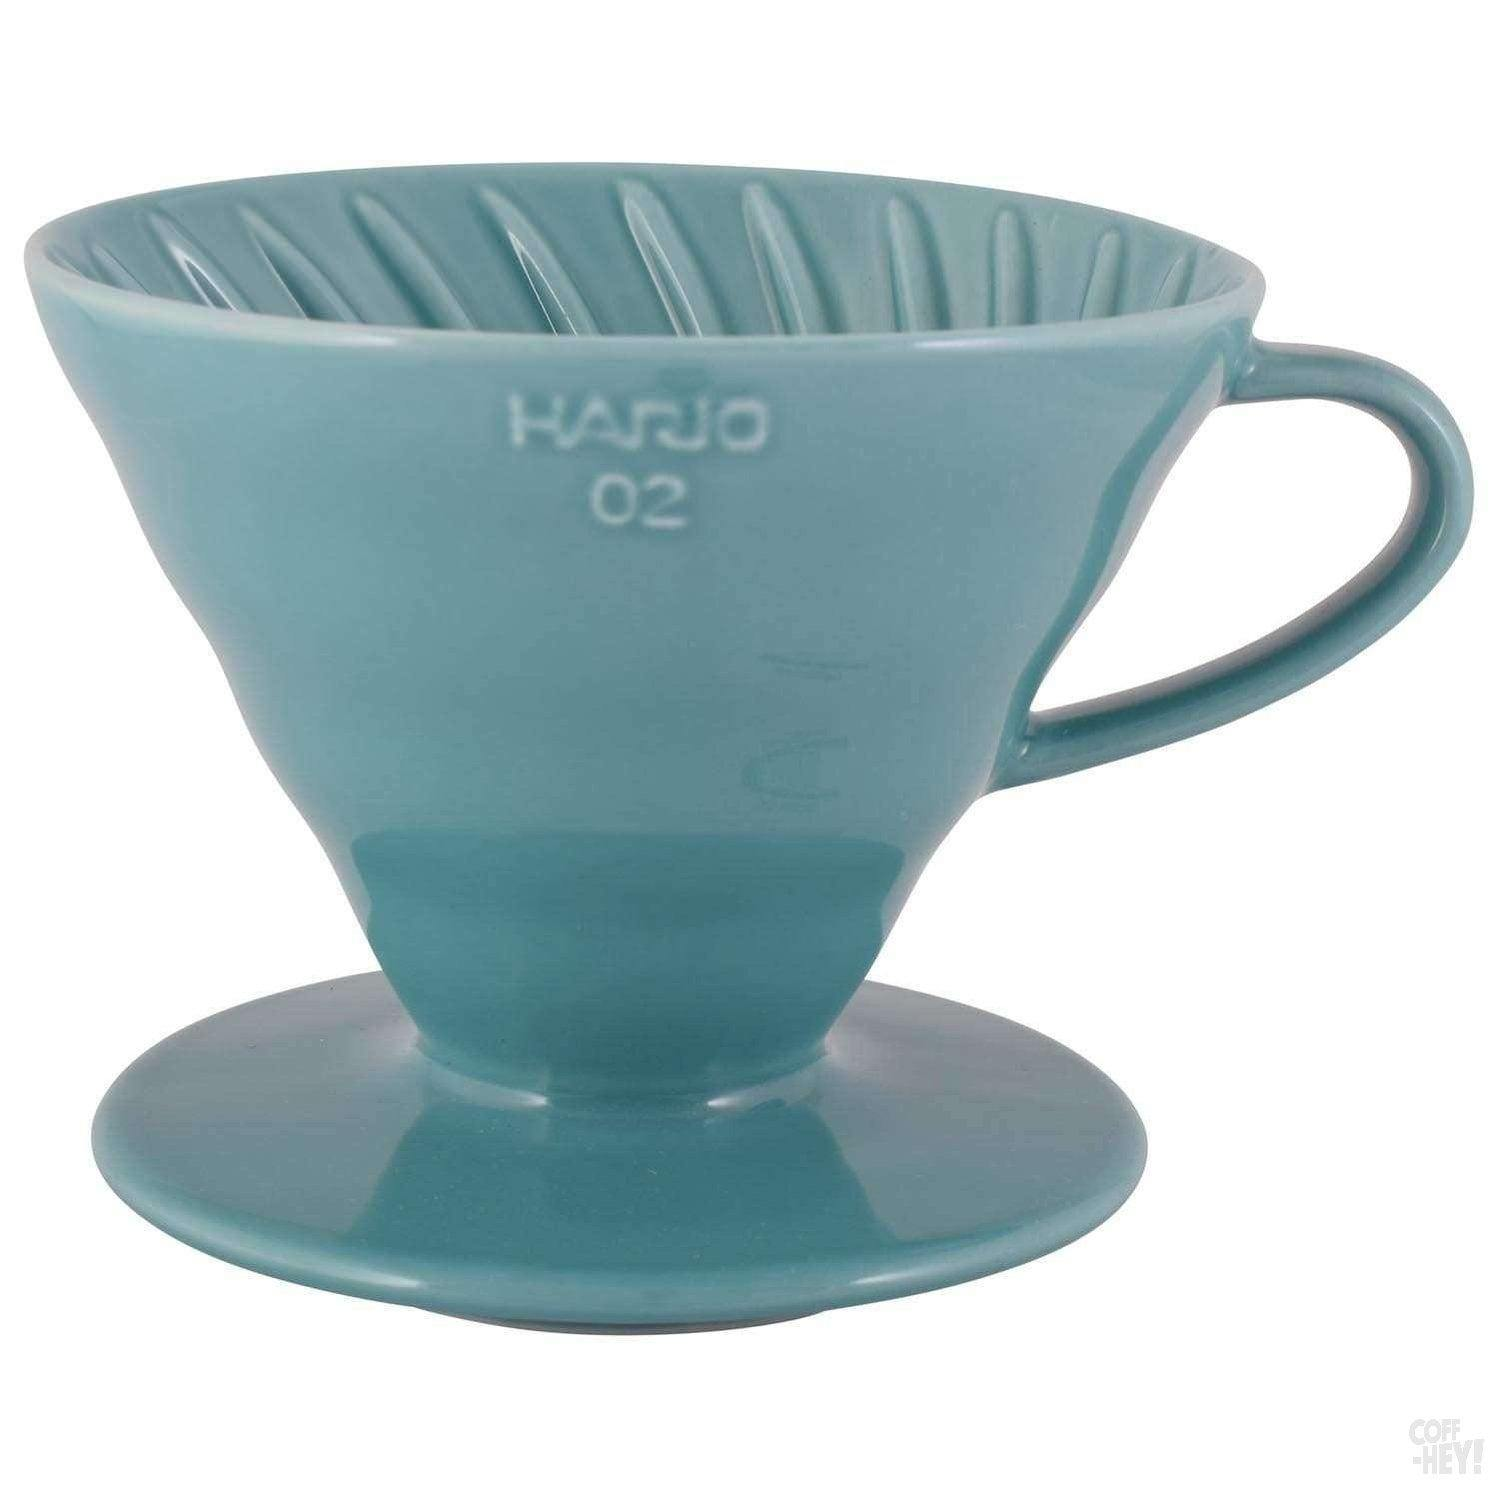 Hario Special Edition V60 02 Ceramic Dripper - Turquoise-Coffee Brewing-Hario-Coff-Hey!